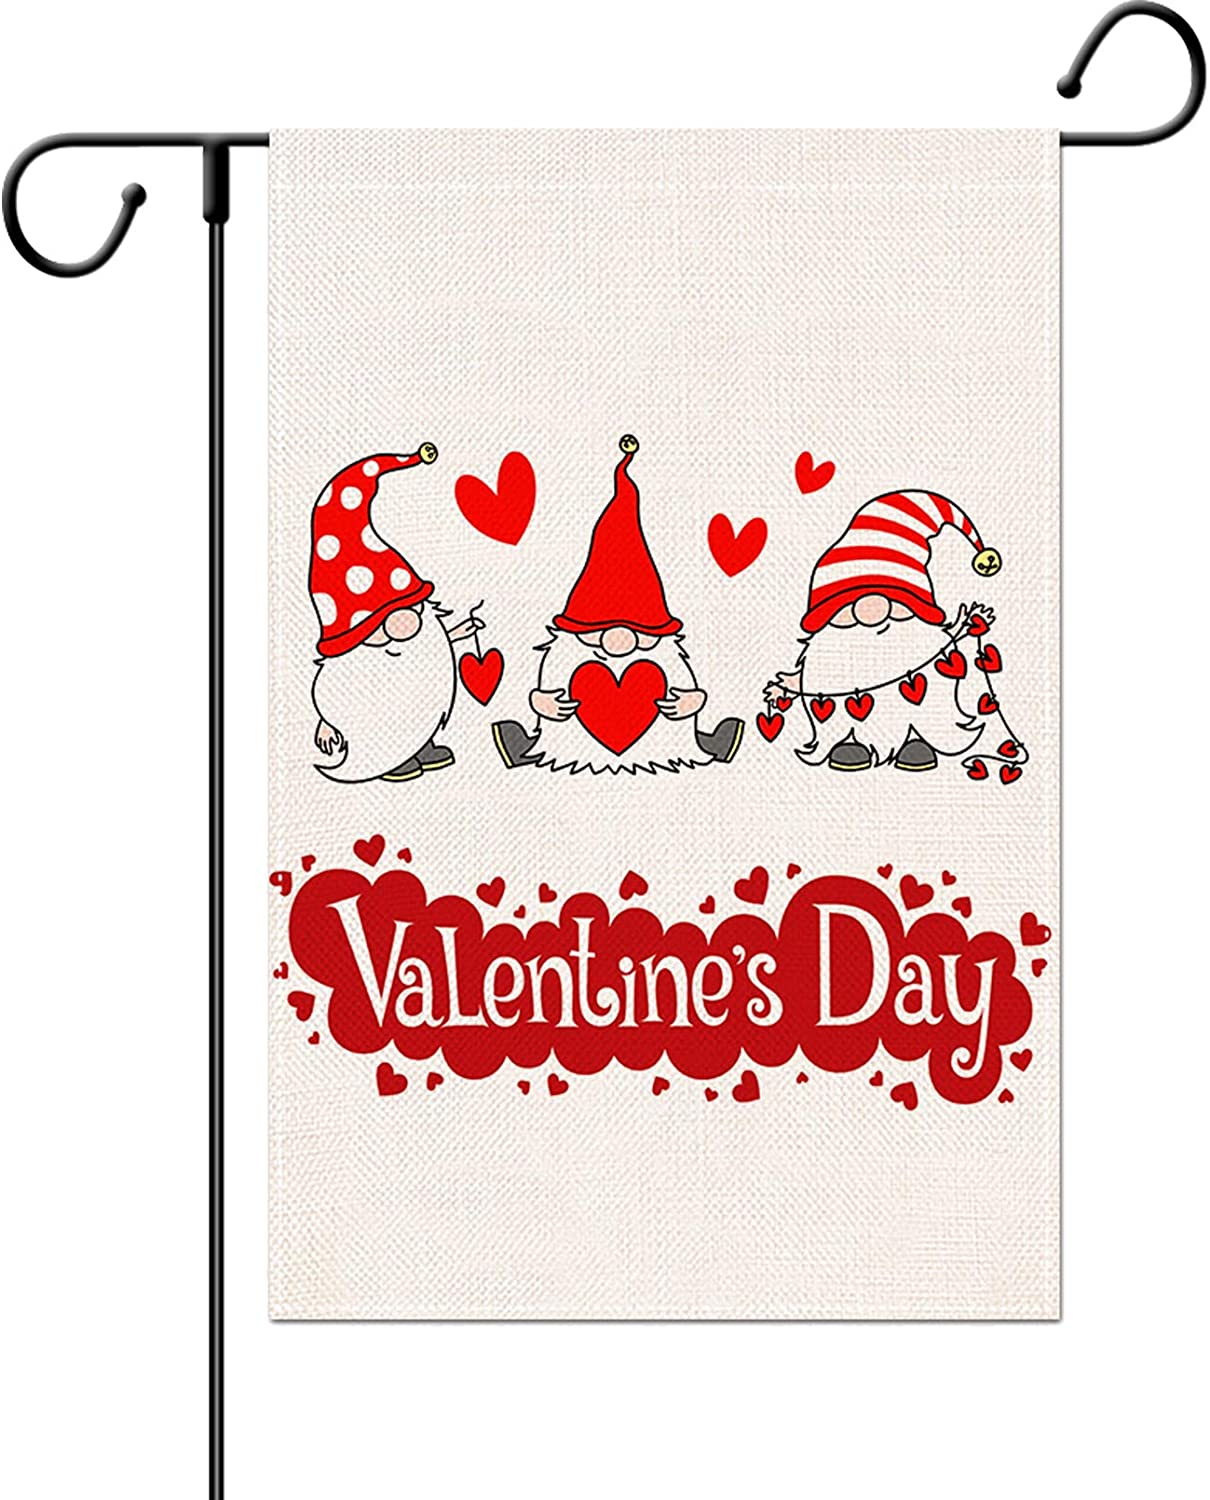 Delokey Valantines Day Garden Flag-12x18 Inch Gnomes Love Heart Double-Sided Valentine's Day Yard Burlap Banner for Home & Outdoor Decoration (Love Heart)